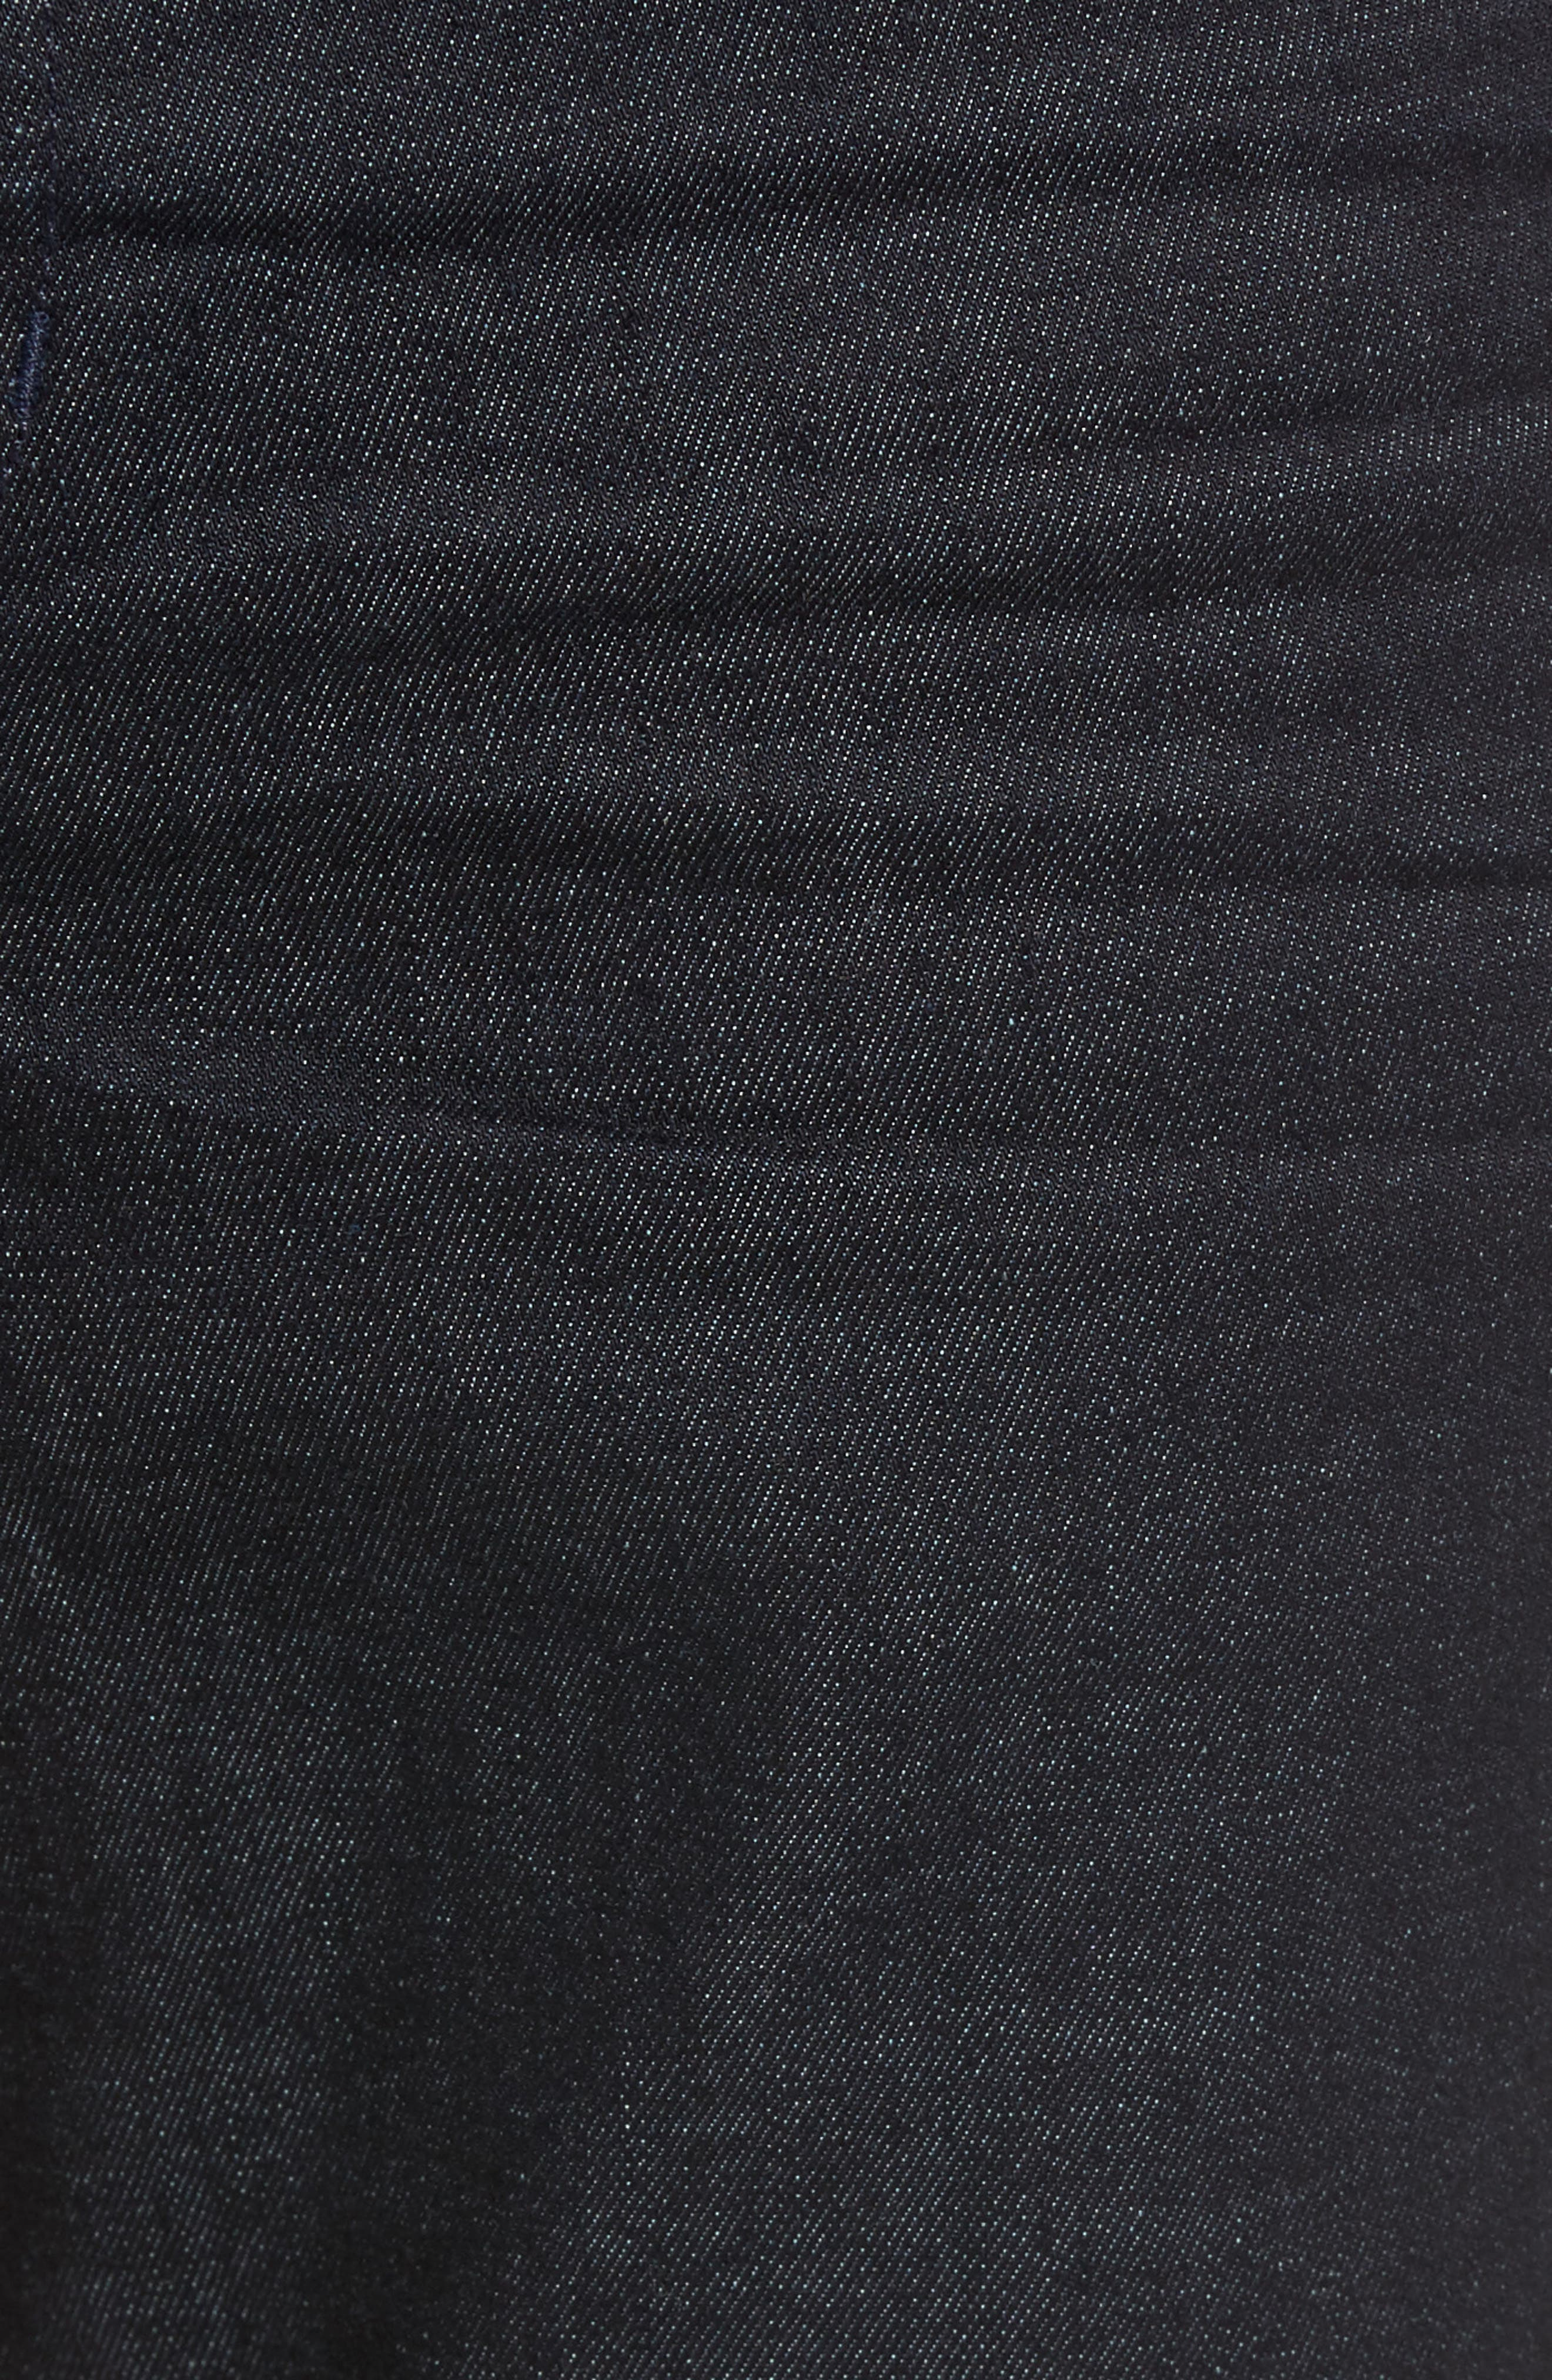 Brixton Slim Straight Fit Jeans,                             Alternate thumbnail 5, color,                             Foster